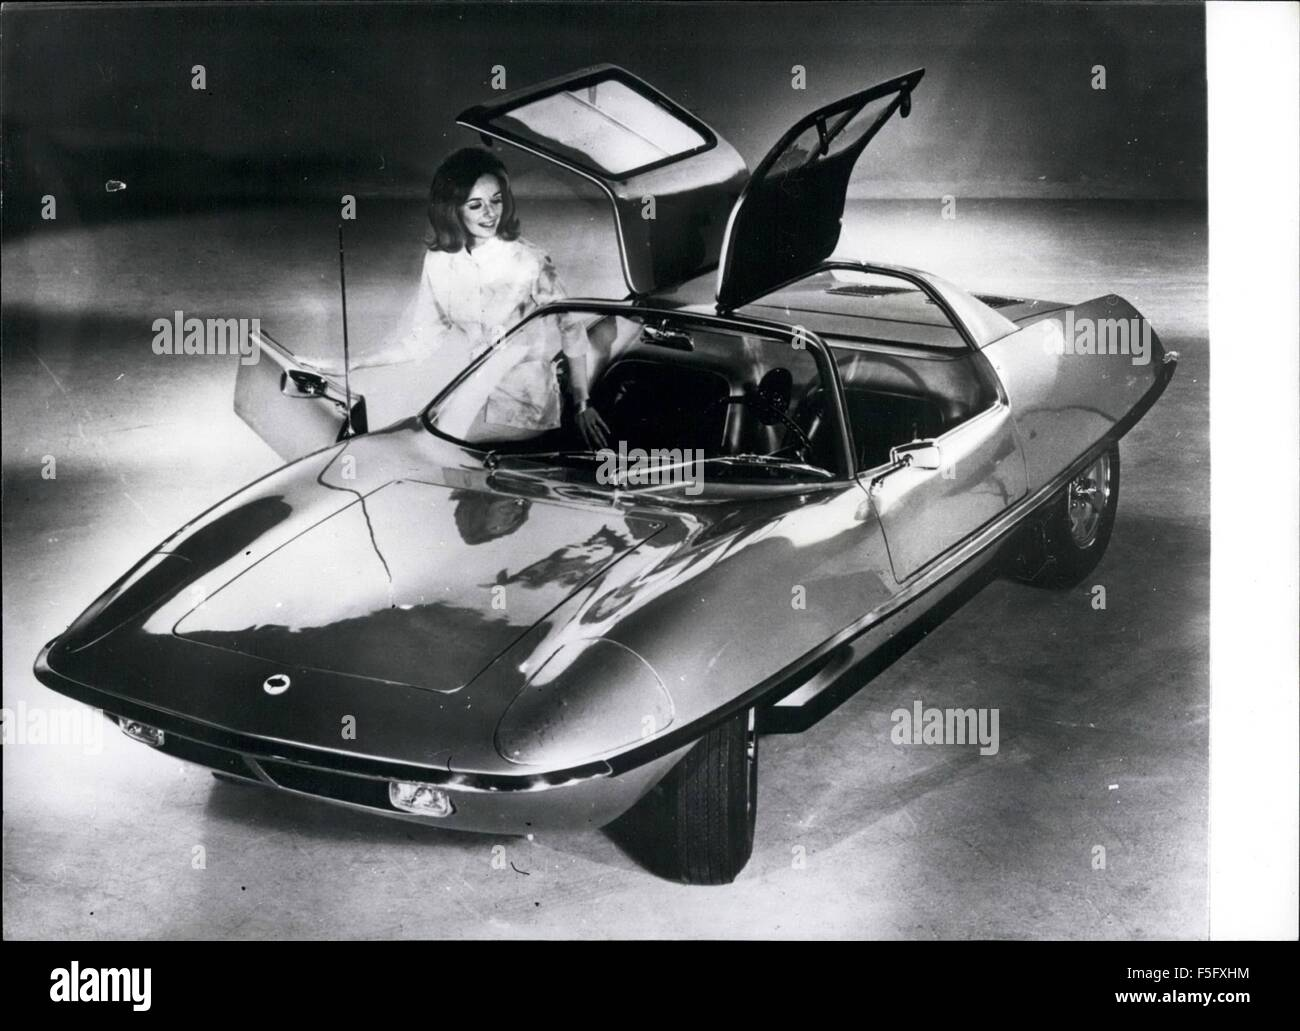 1968 - SUPER PLASTIC SPORTS CAR UNVEILED: A dynamic new sports car has made its debut in the U.S. Apart from its - Stock Image